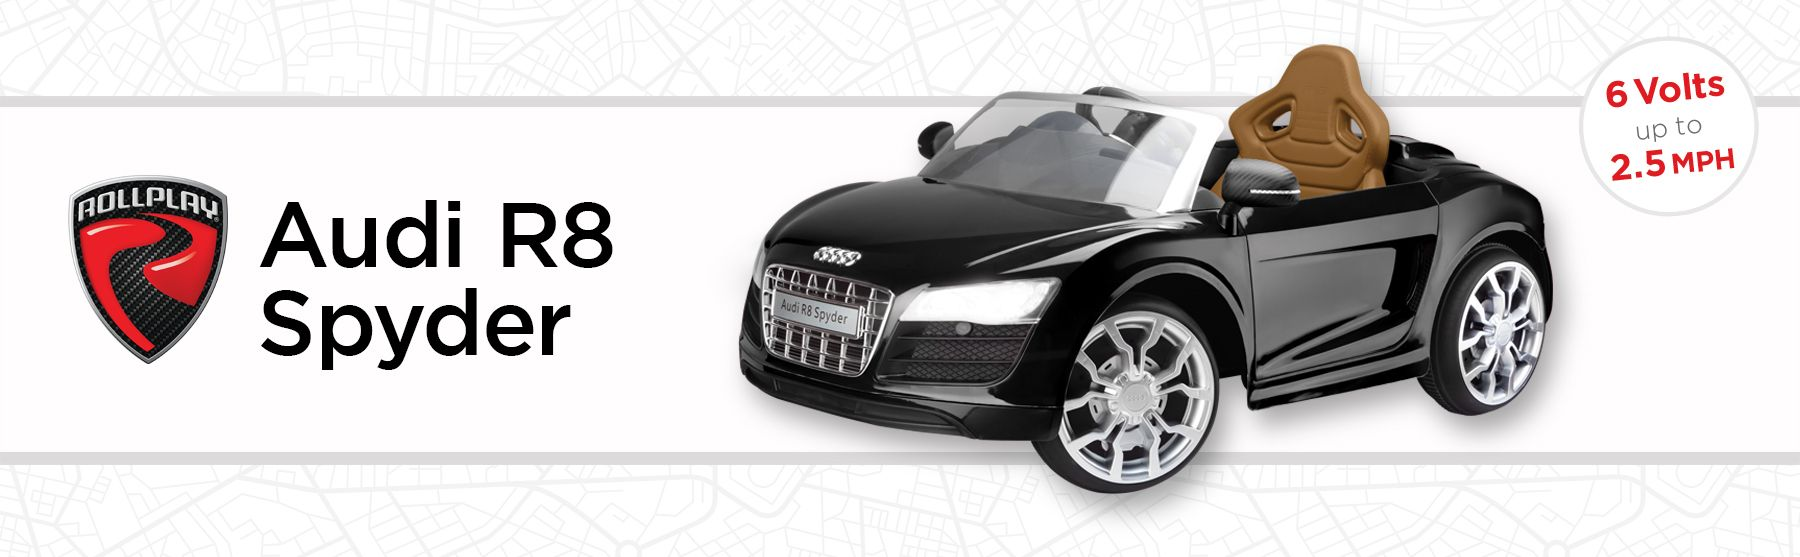 Rollplay Audi R8 Spyder 6 Volt Battery Ride-On Vehicle